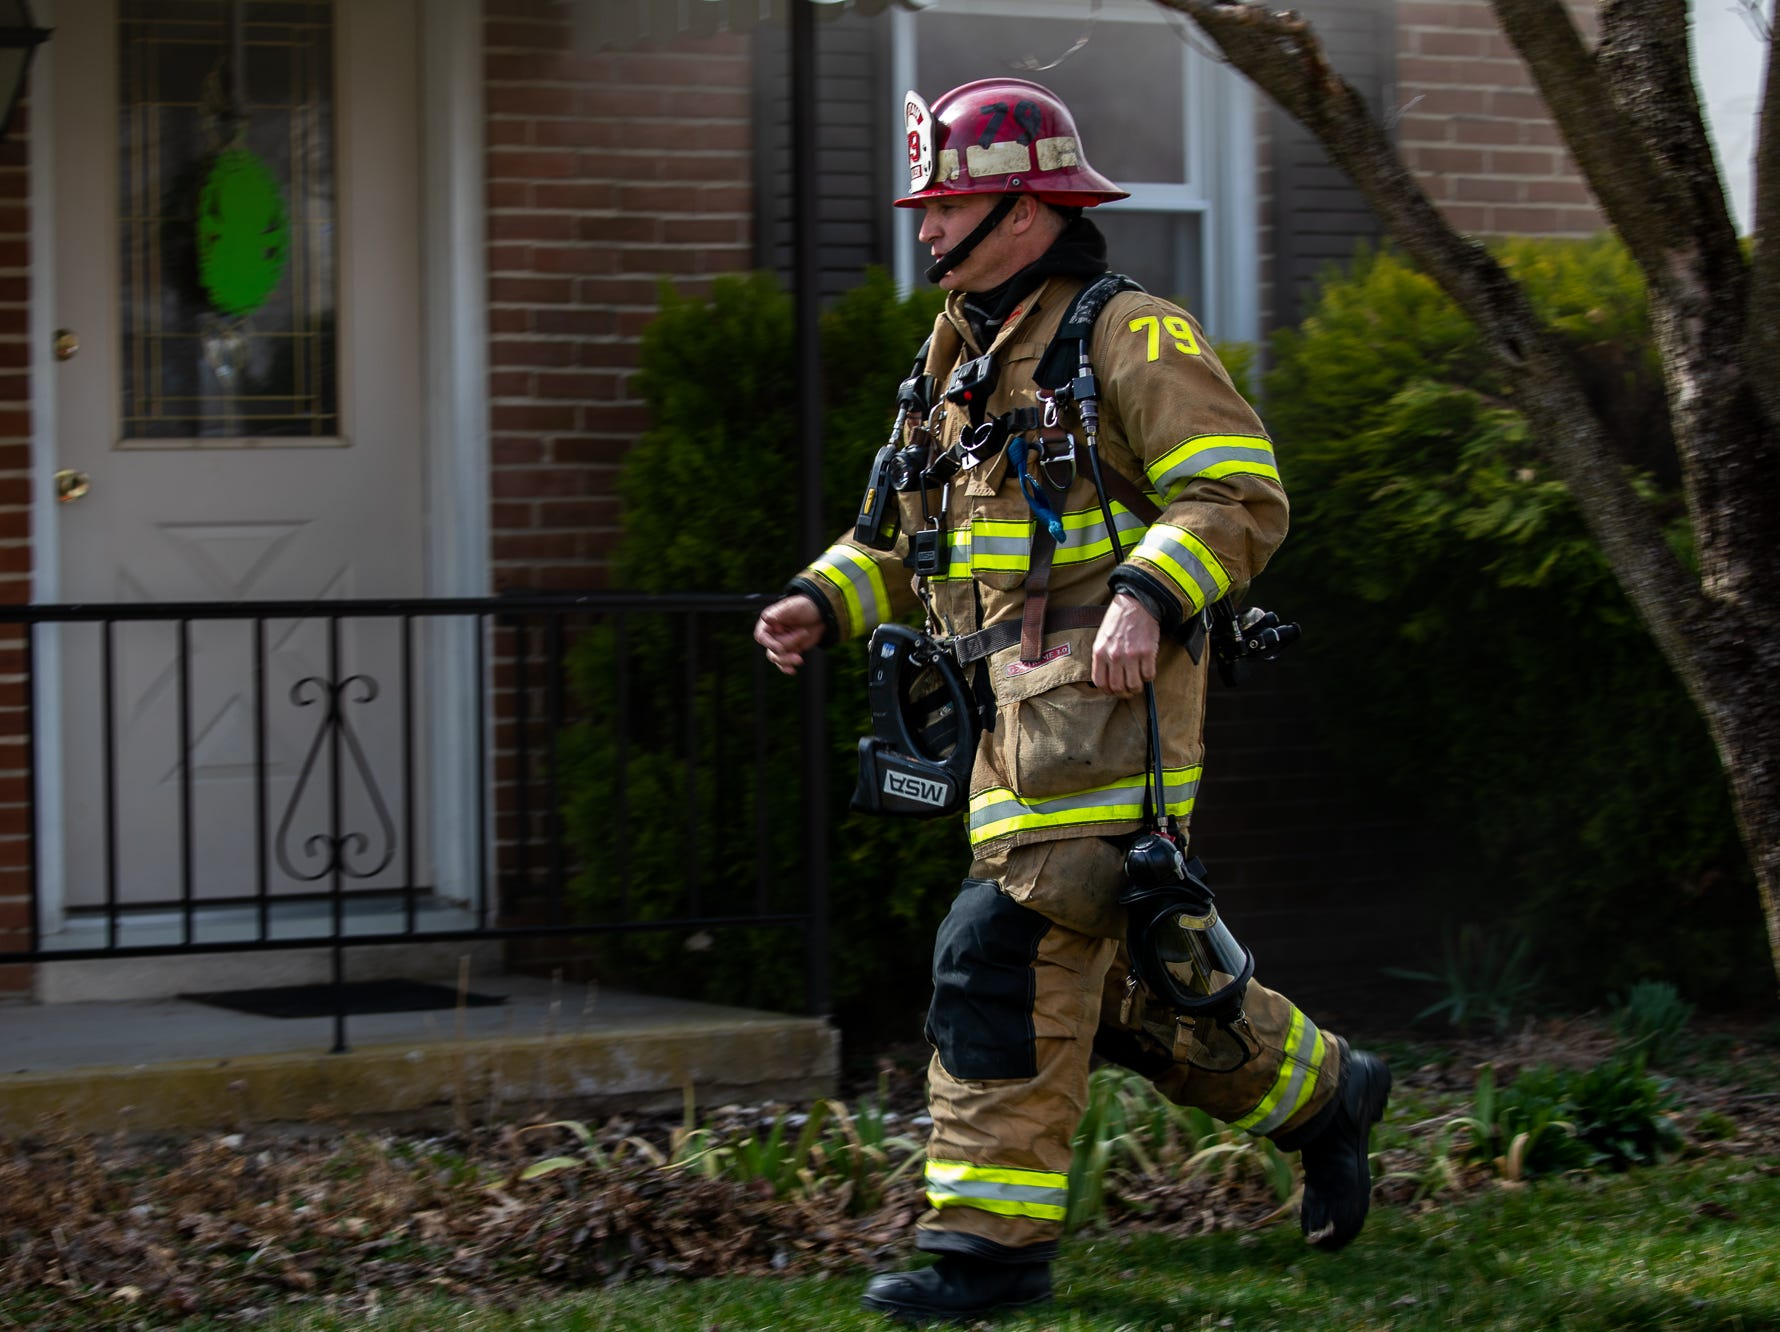 Captain Geoff Miller heads to the front door to begin the initial interior fire attack at the scene of a house fire on the 100 block of Mumma Ave., Saturday, March 30, 2019, in Penn Township. No one was injured in the fire, which appears to have been an accidental fire in the kitchen, said Hanover Area Fire & Rescue Chief Tony Clousher.